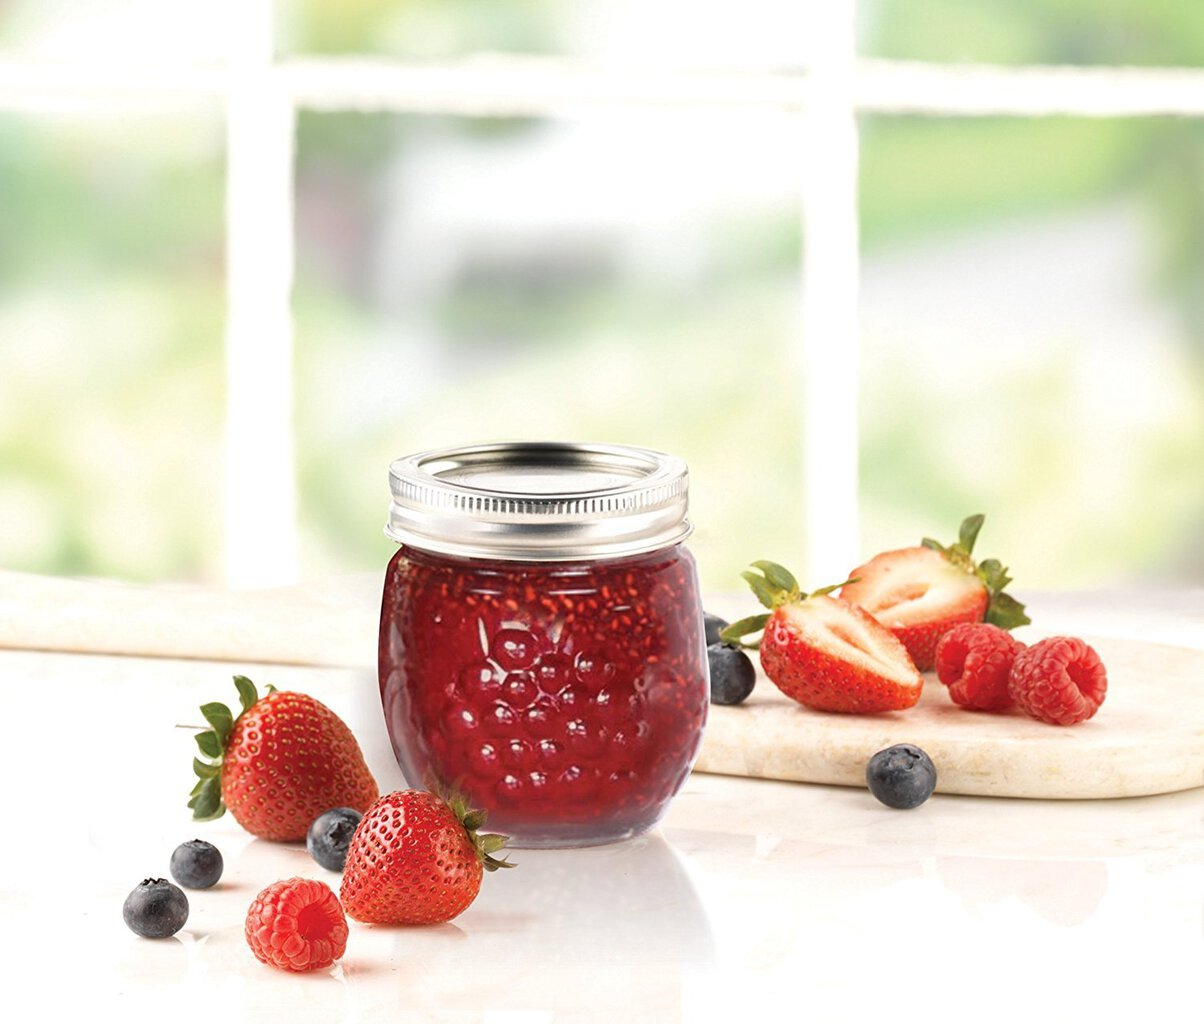 Stock photo of a Ball decorative canning jar.